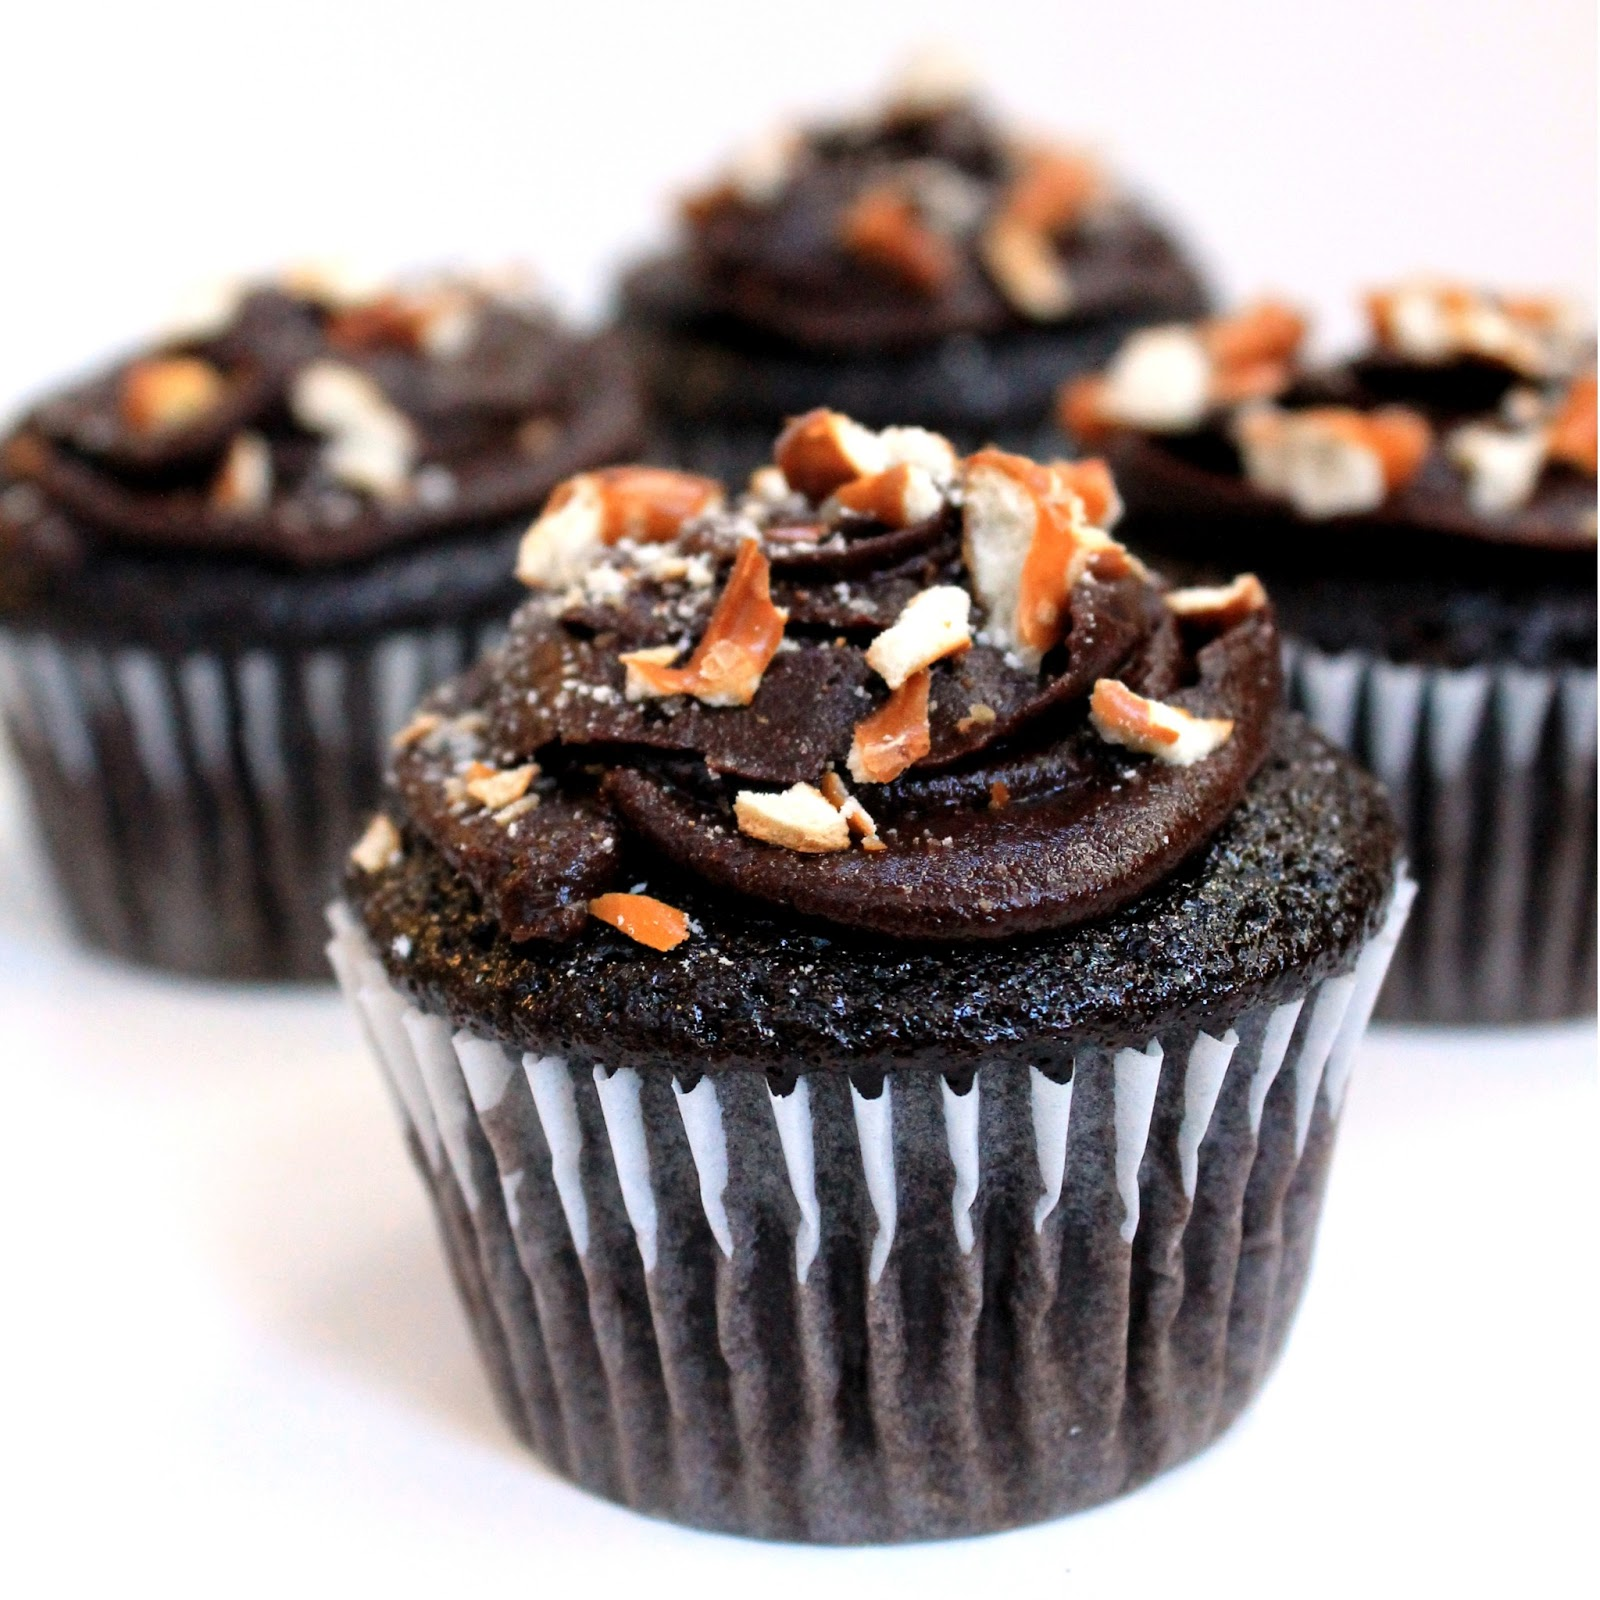 ... Cupcakes with Peanut Butter Filling, Whipped Chocolate Ganache, and